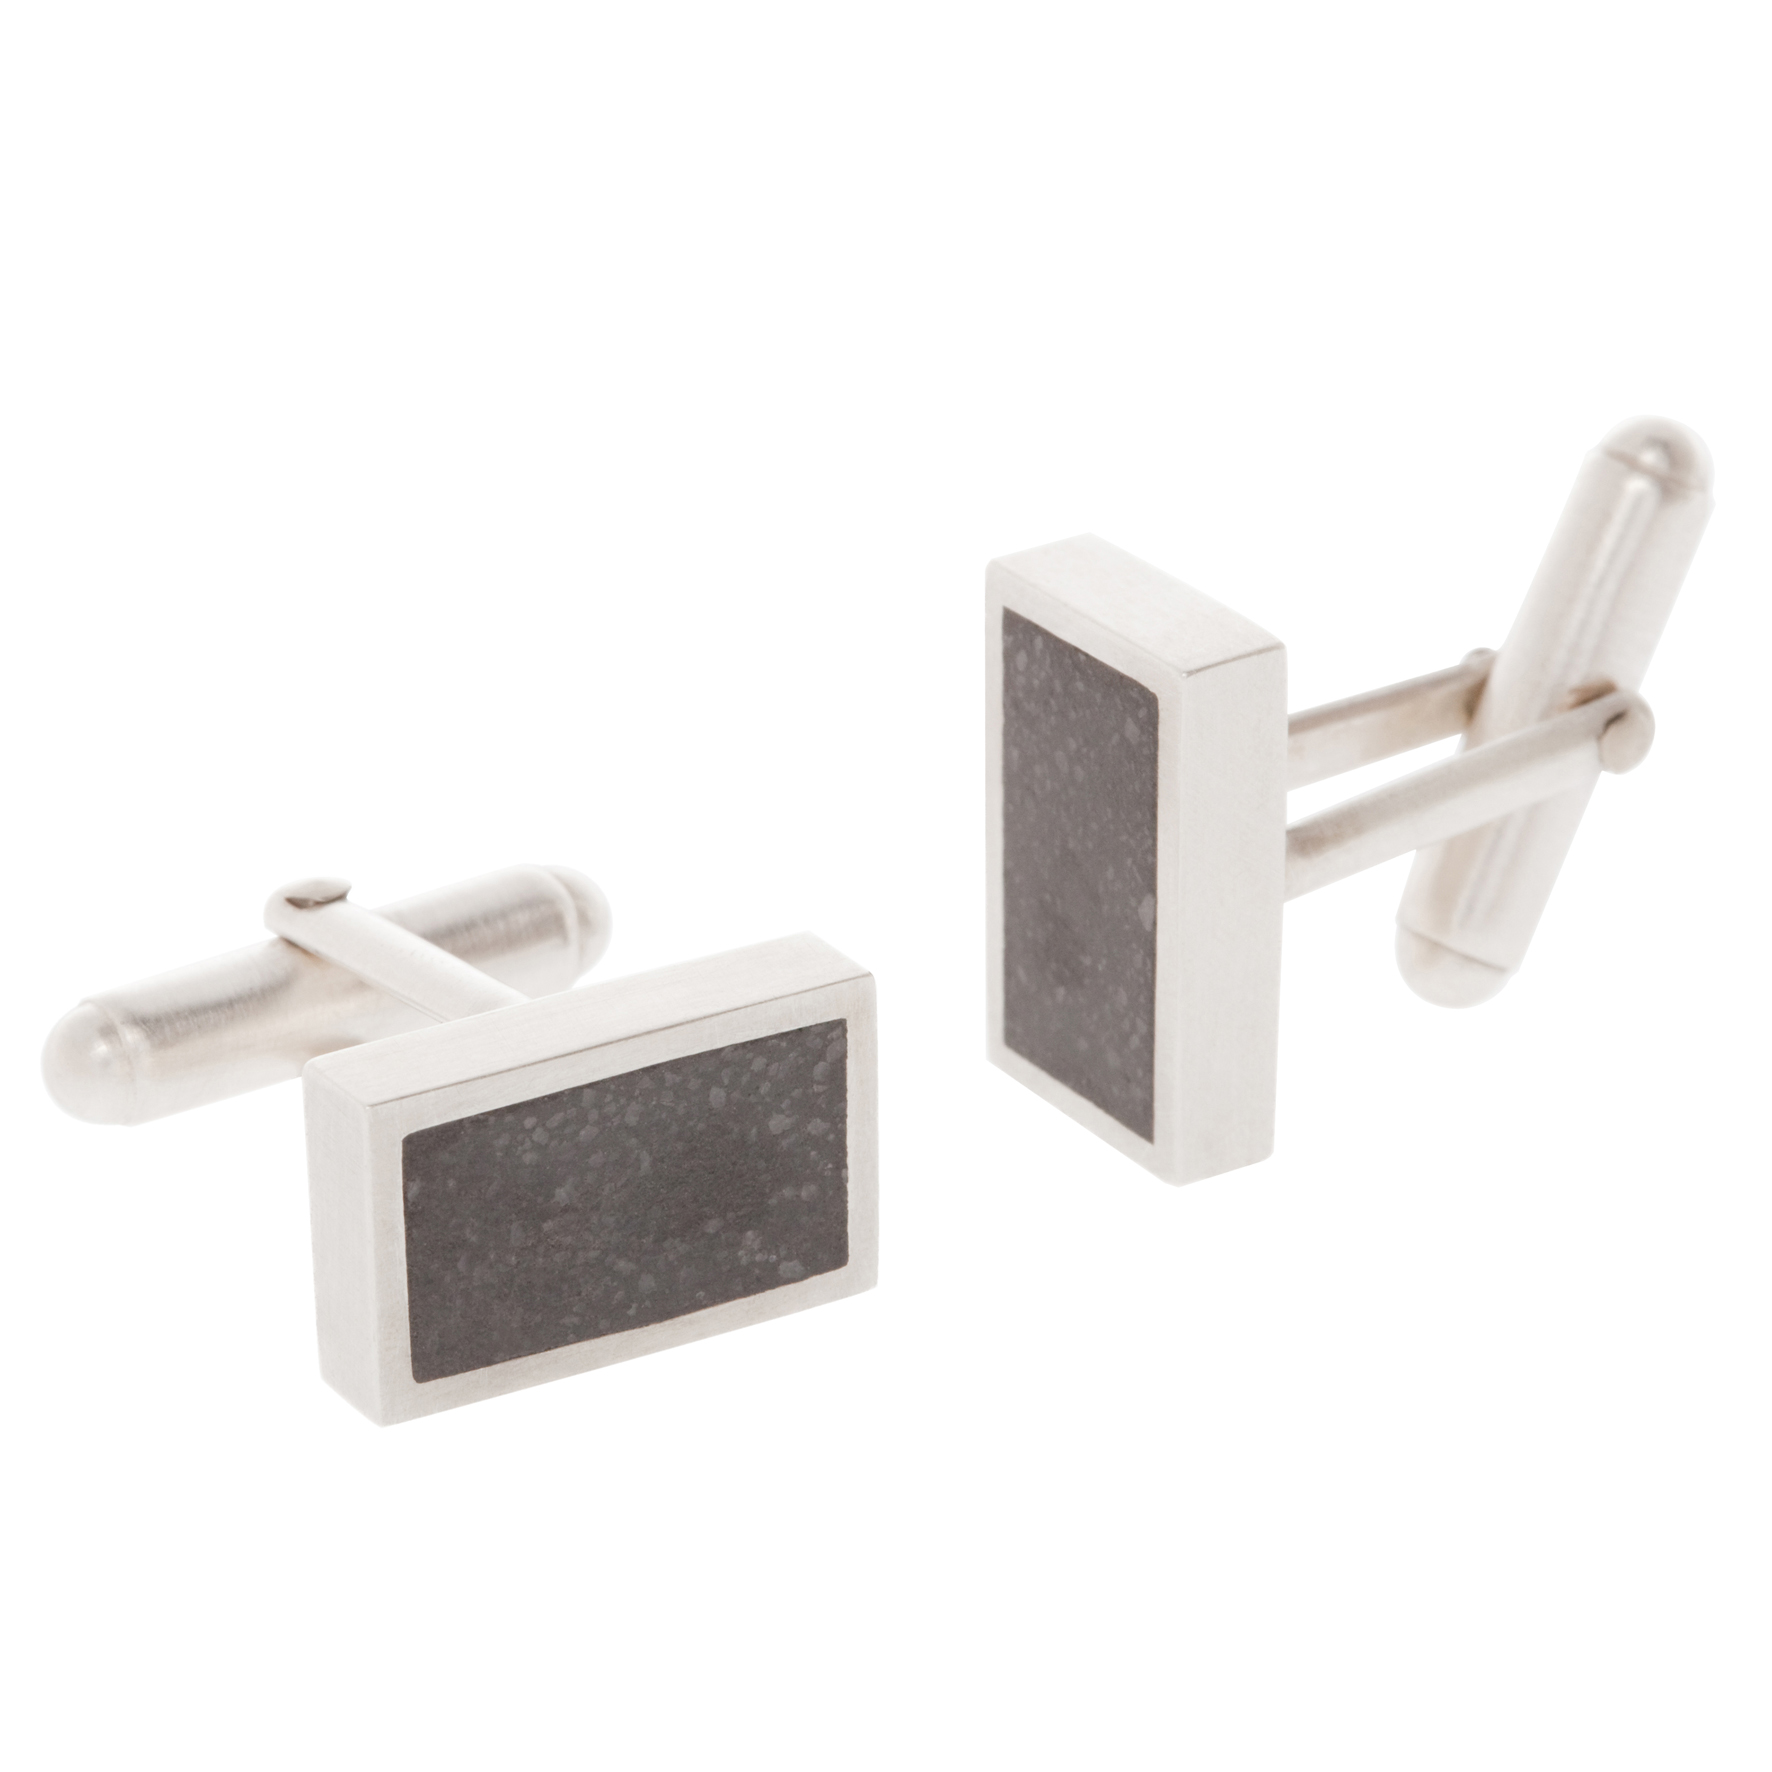 Simultaneously classic and contemporary, these cufflinks measure 17mm by 10mm with a height of 3.6mm.